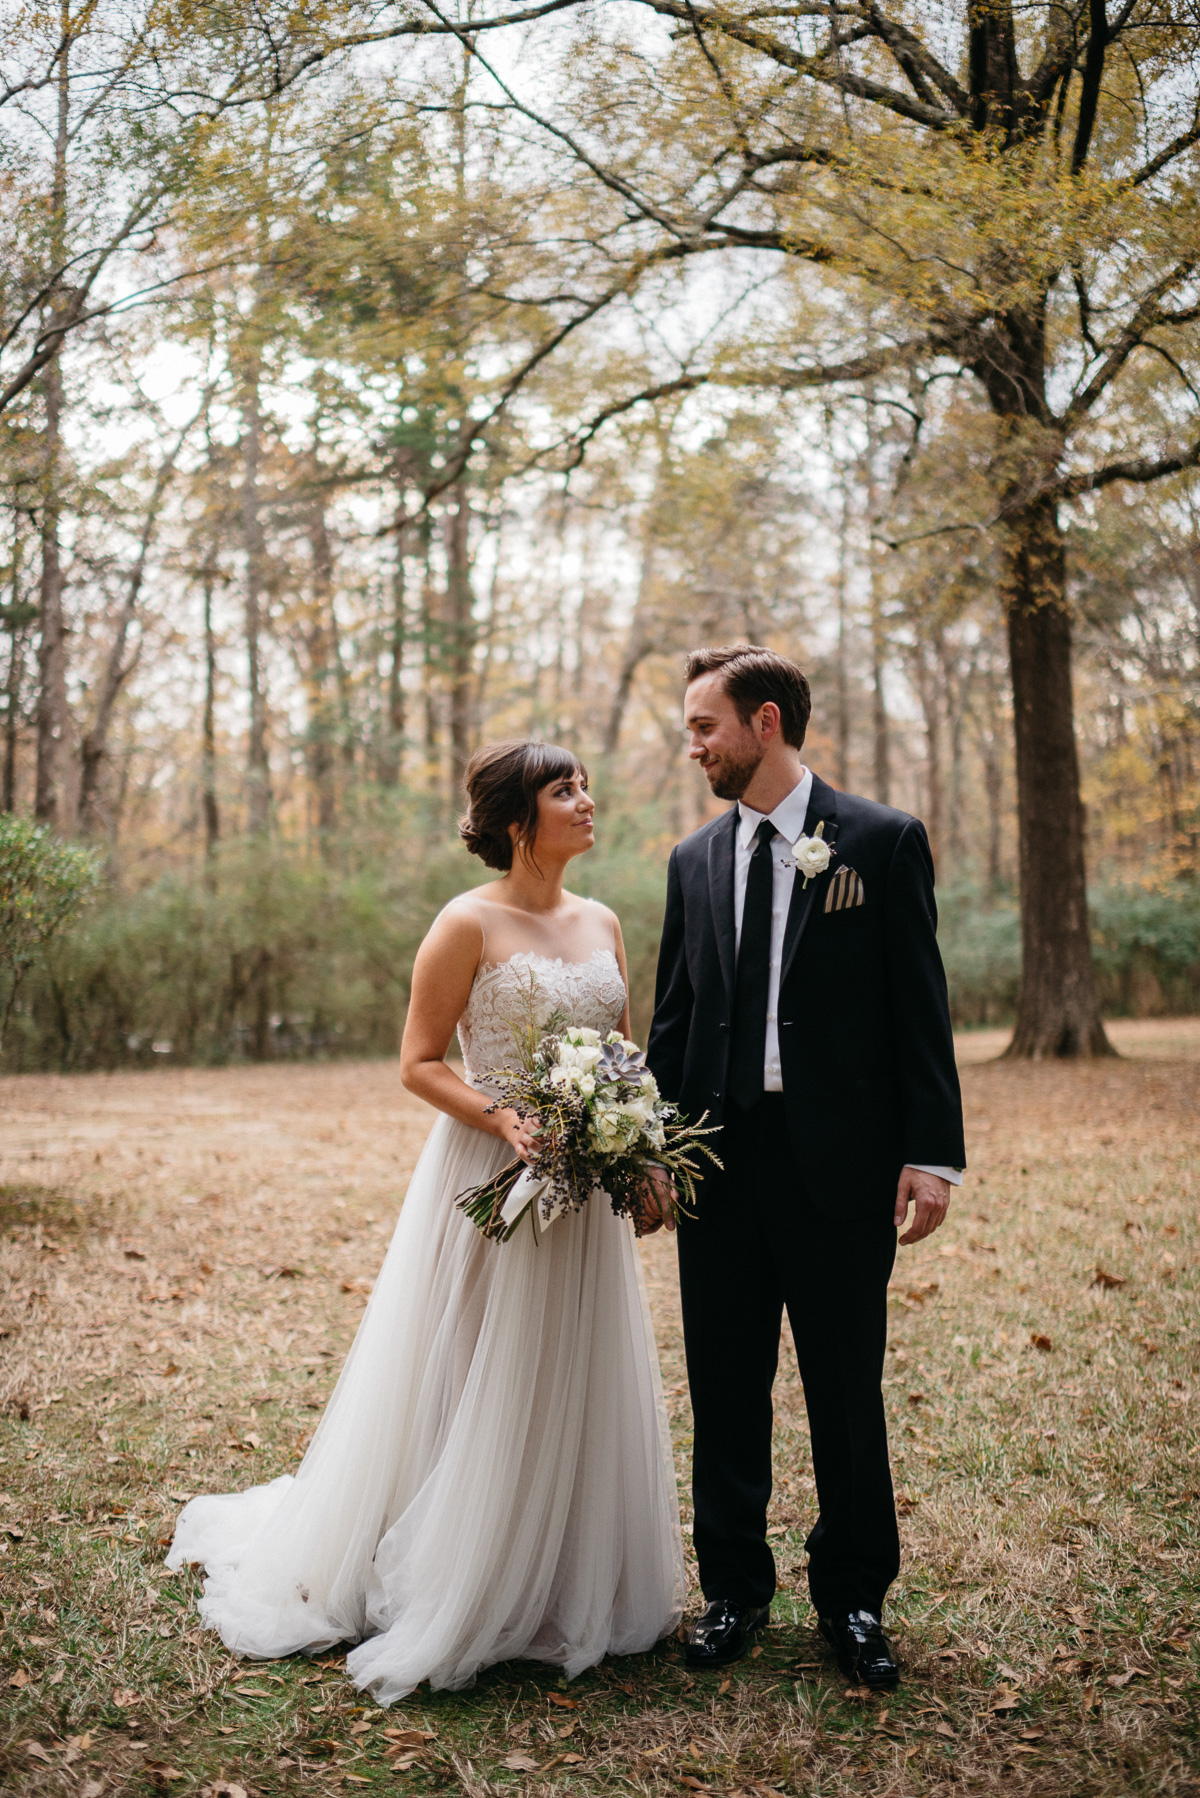 Elopement photography in the woods at Rowan Oak, Faulkner's home